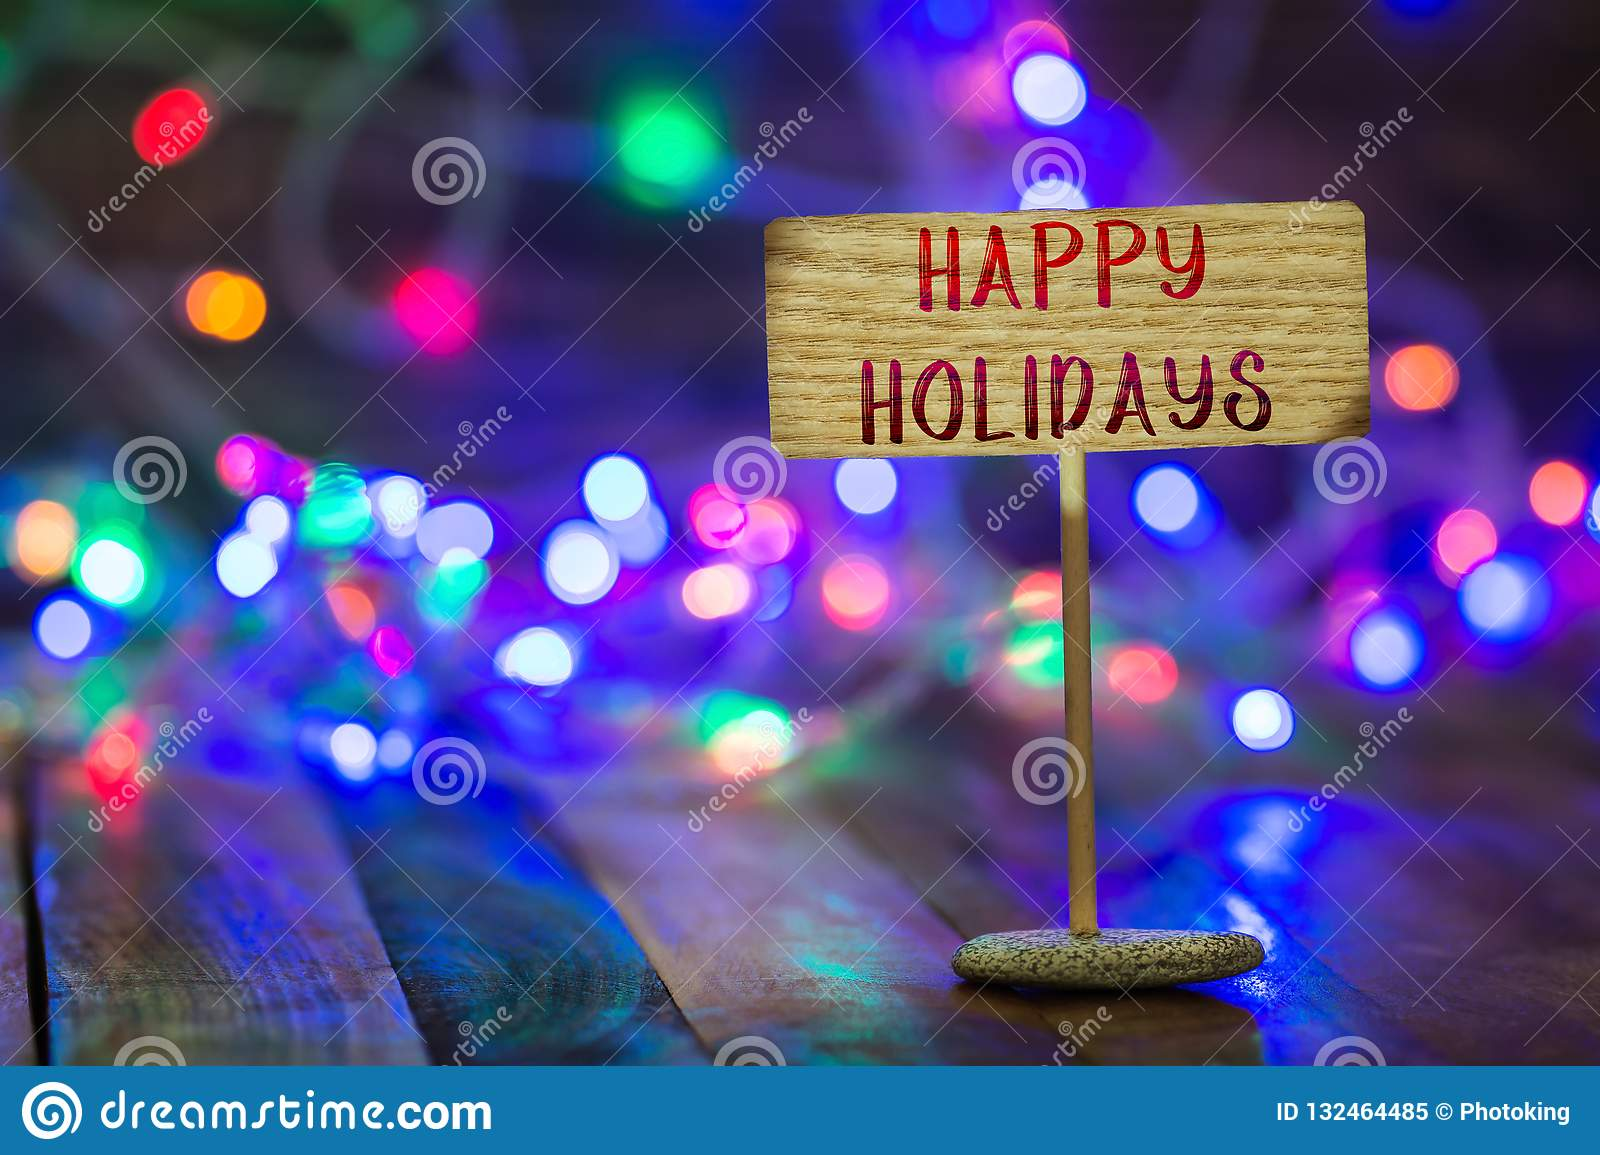 371 114 Happy Holidays Photos Free Royalty Free Stock Photos From Dreamstime